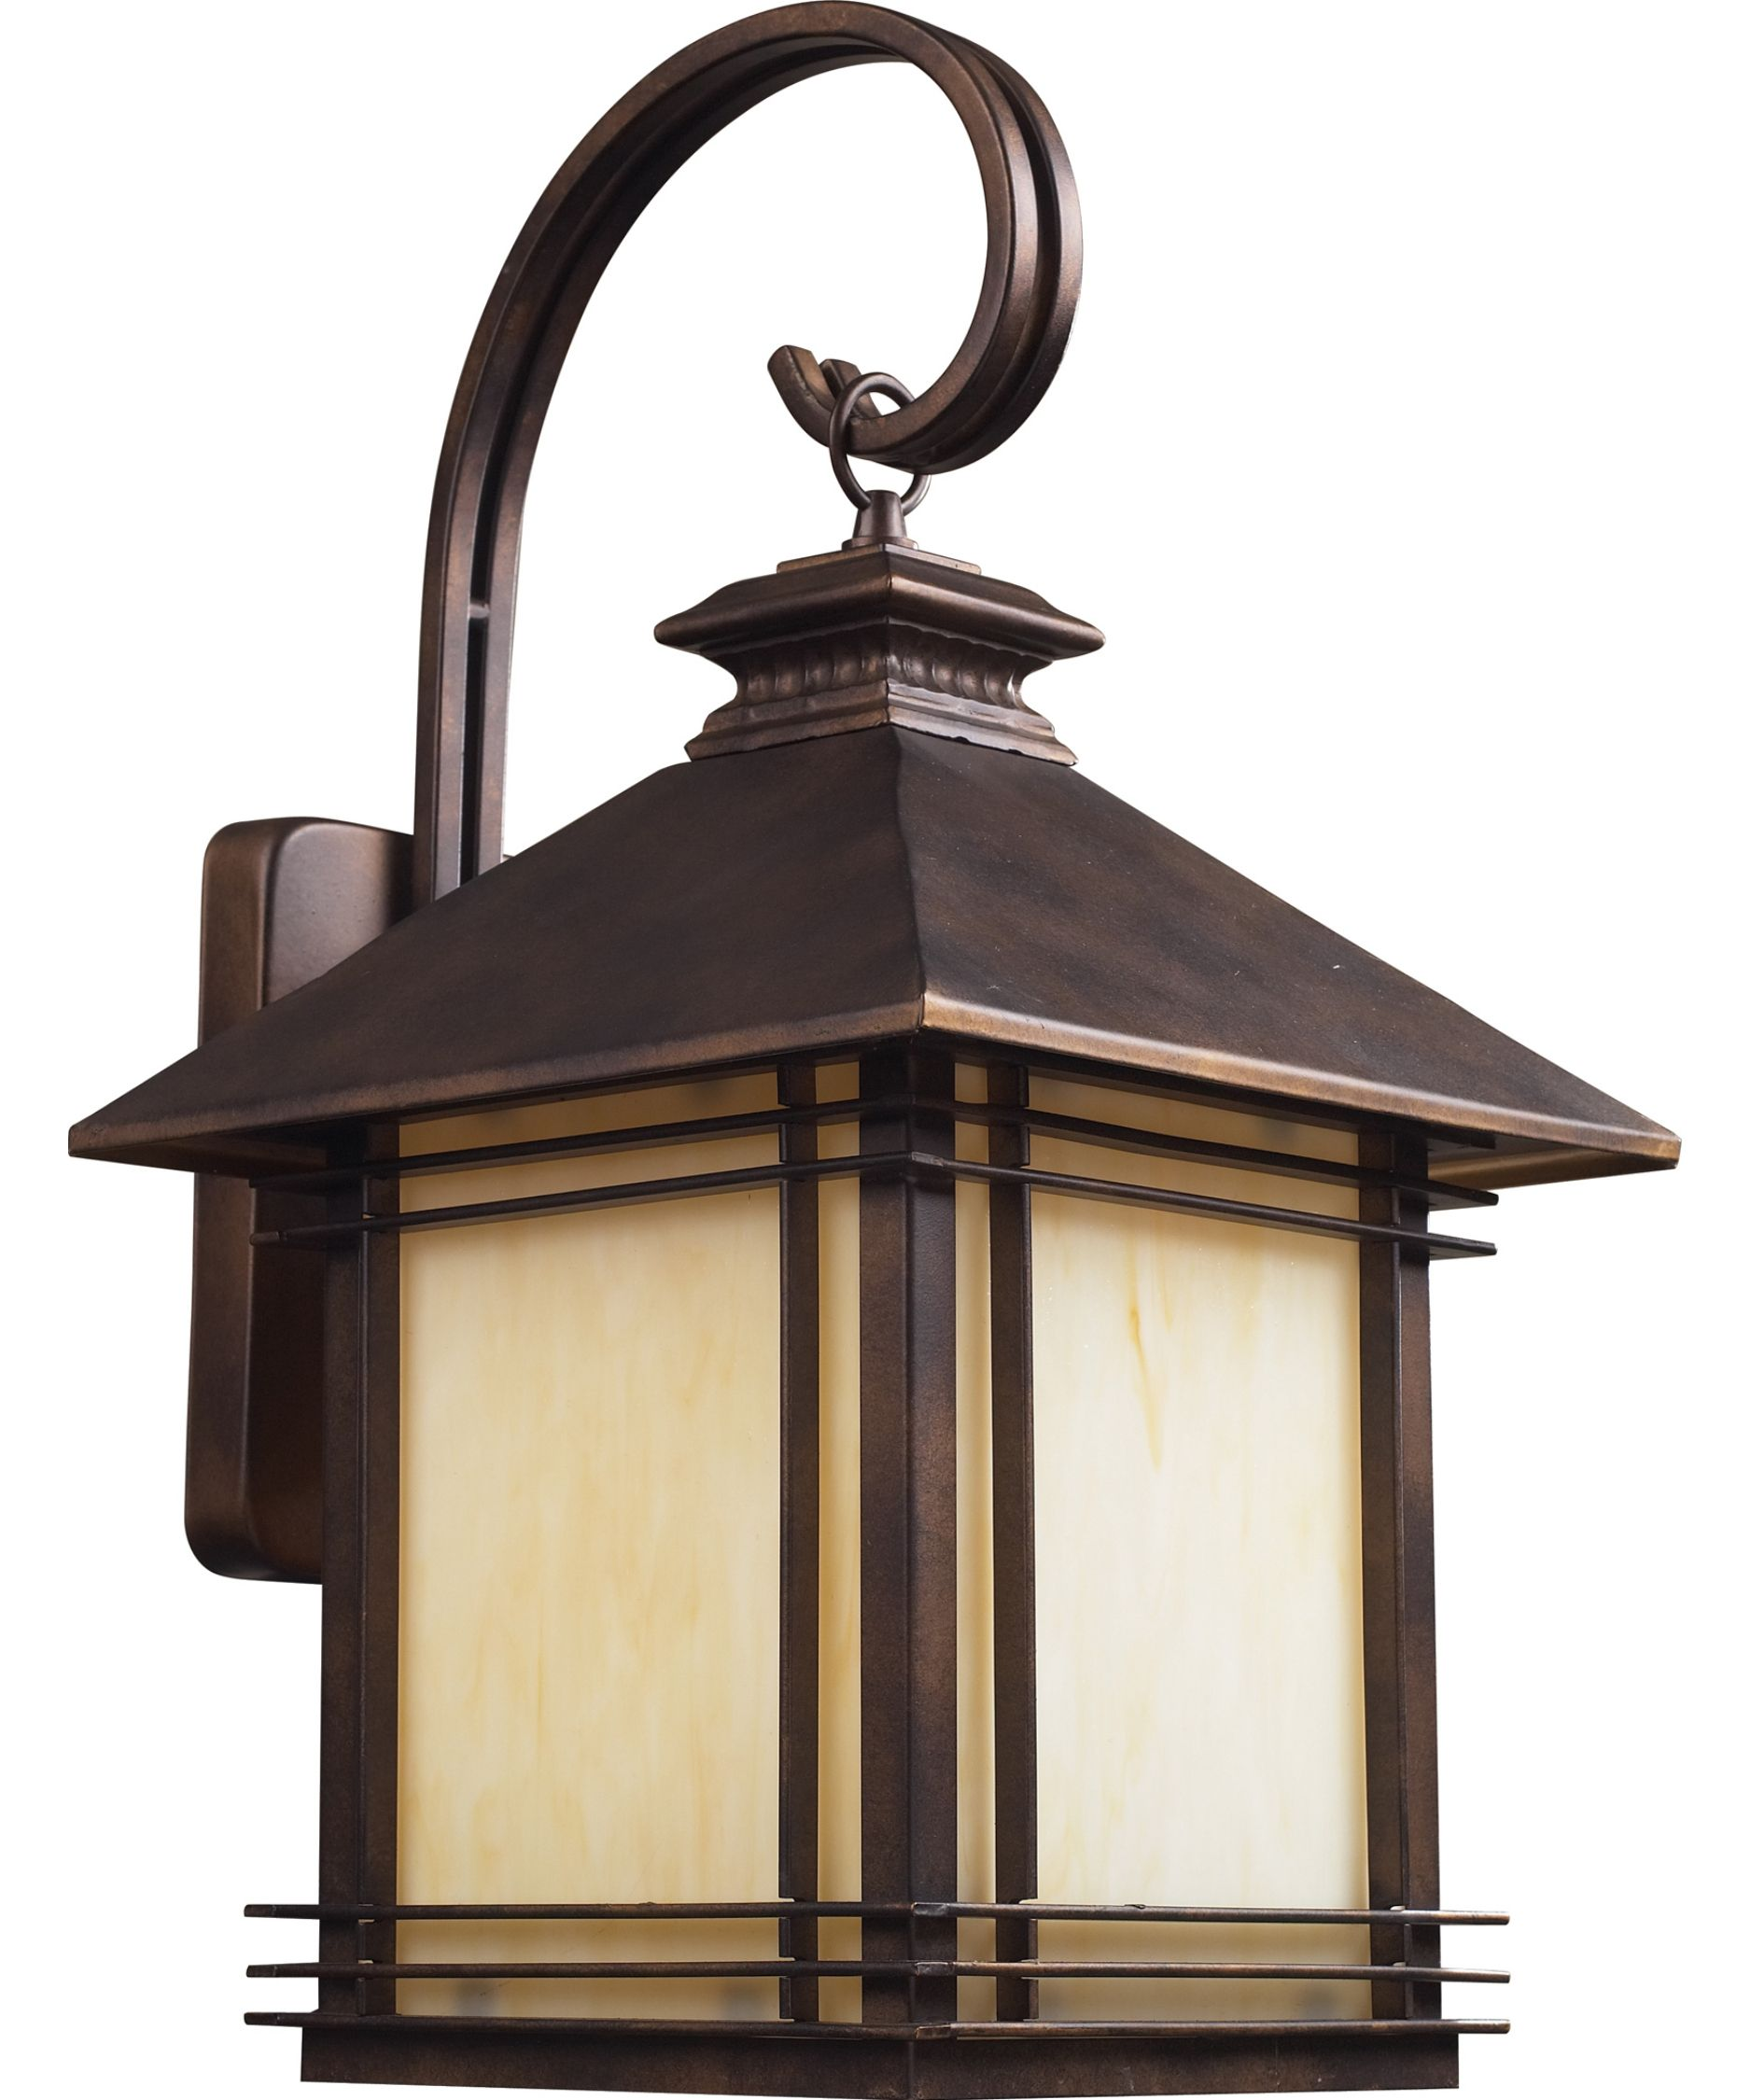 Pin By Louis Baudoin On Products I Love Outdoor Sconces Elk Lighting Outdoor Wall Sconce